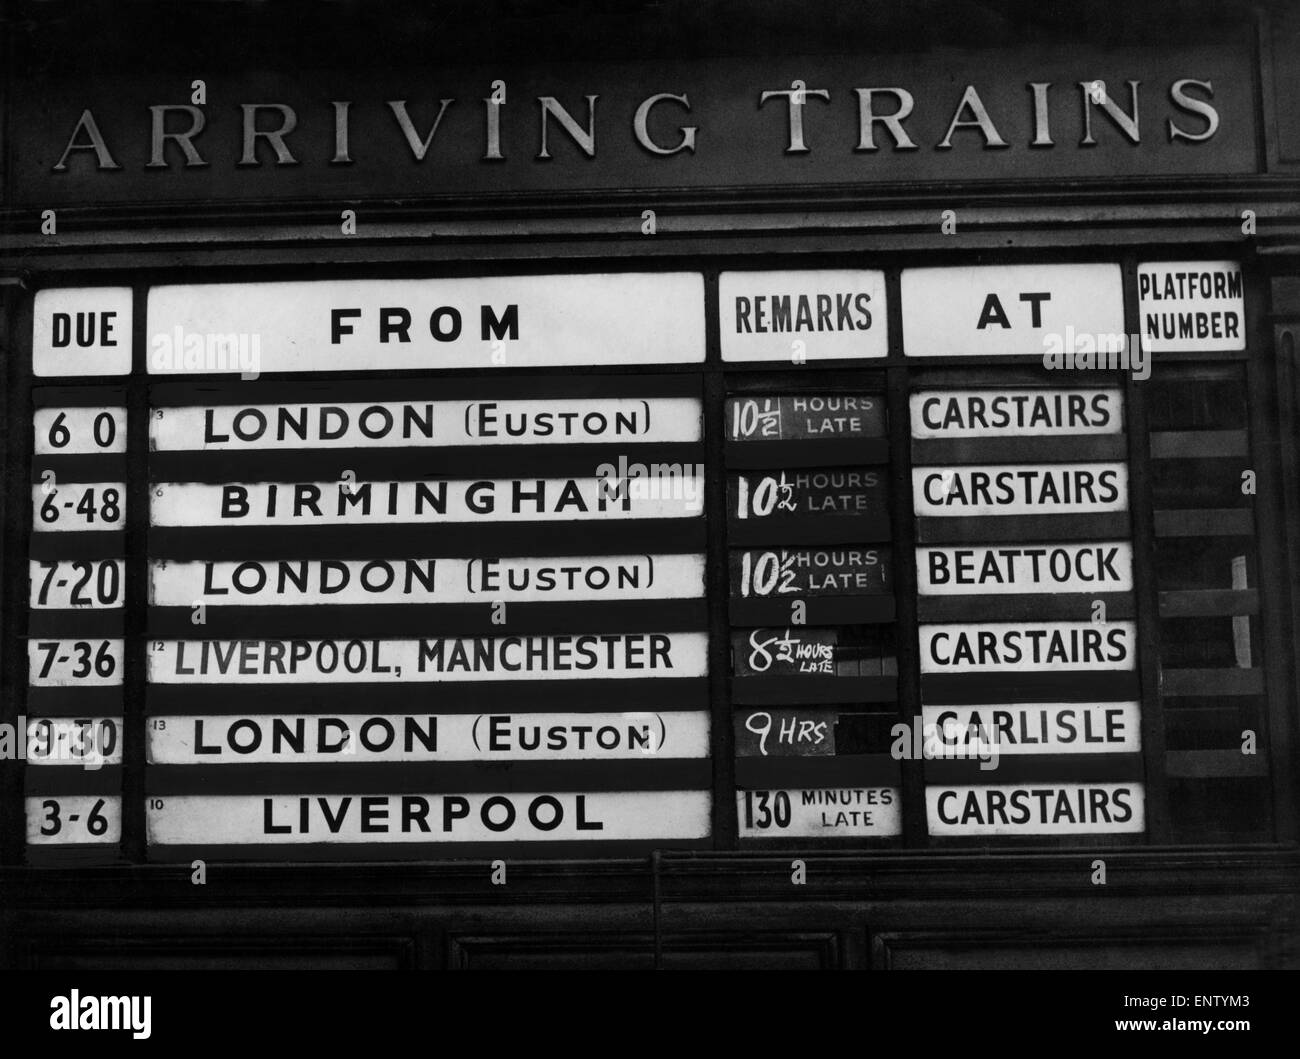 Arrivals Board indicates severe train delays at Glasgow Central Station, Glasgow, Scotland, 25th February 1958. - Stock Image